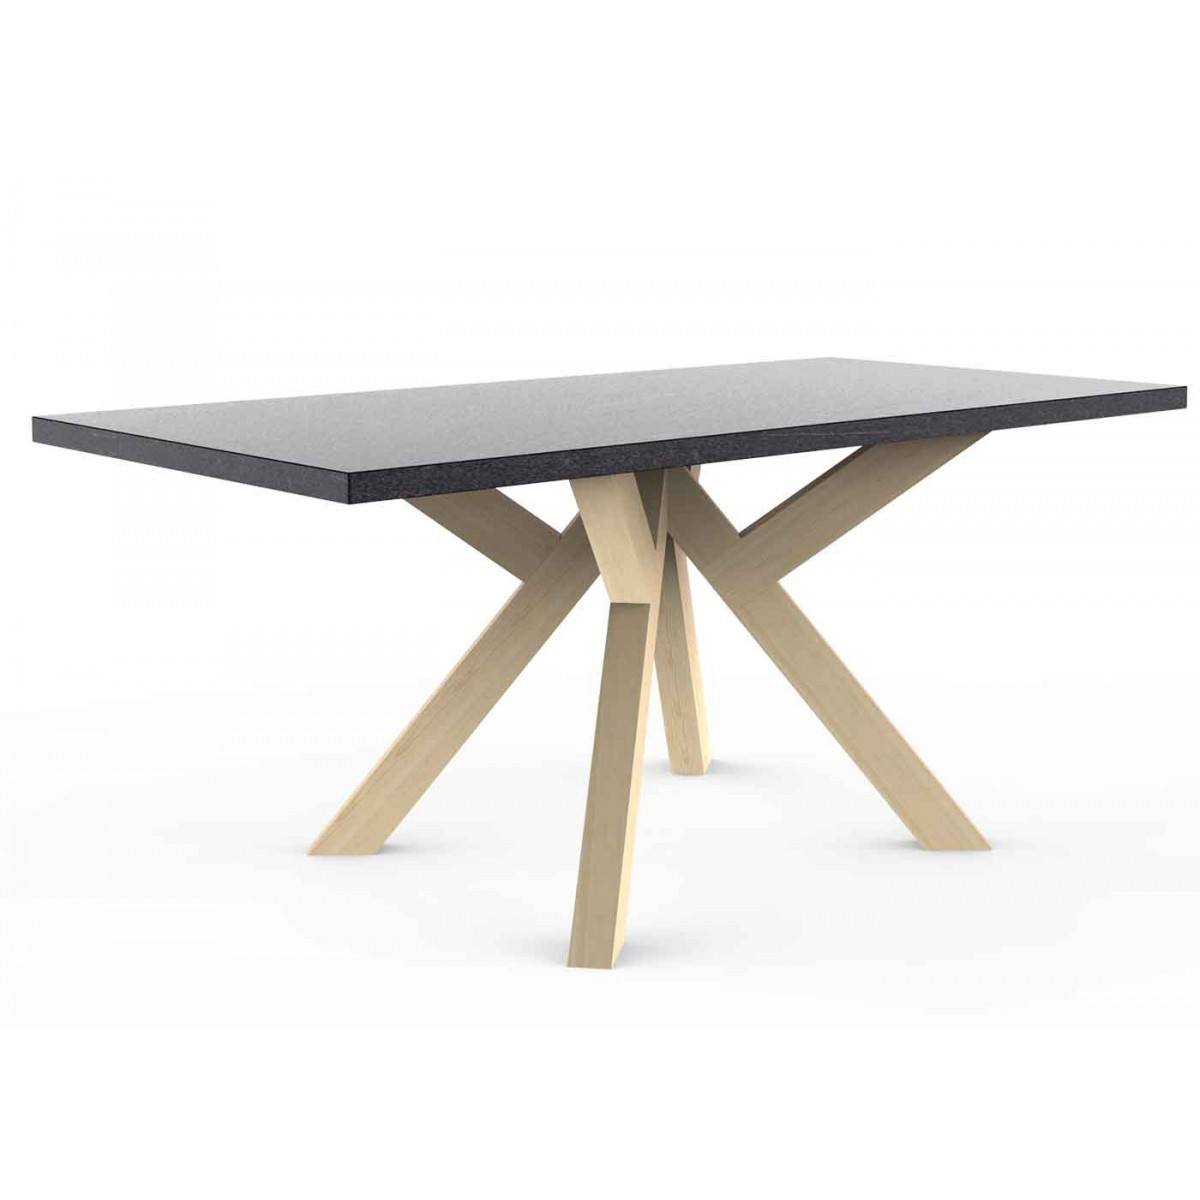 Pi tement design en bois massif pour table manger design for Pietement de table en bois